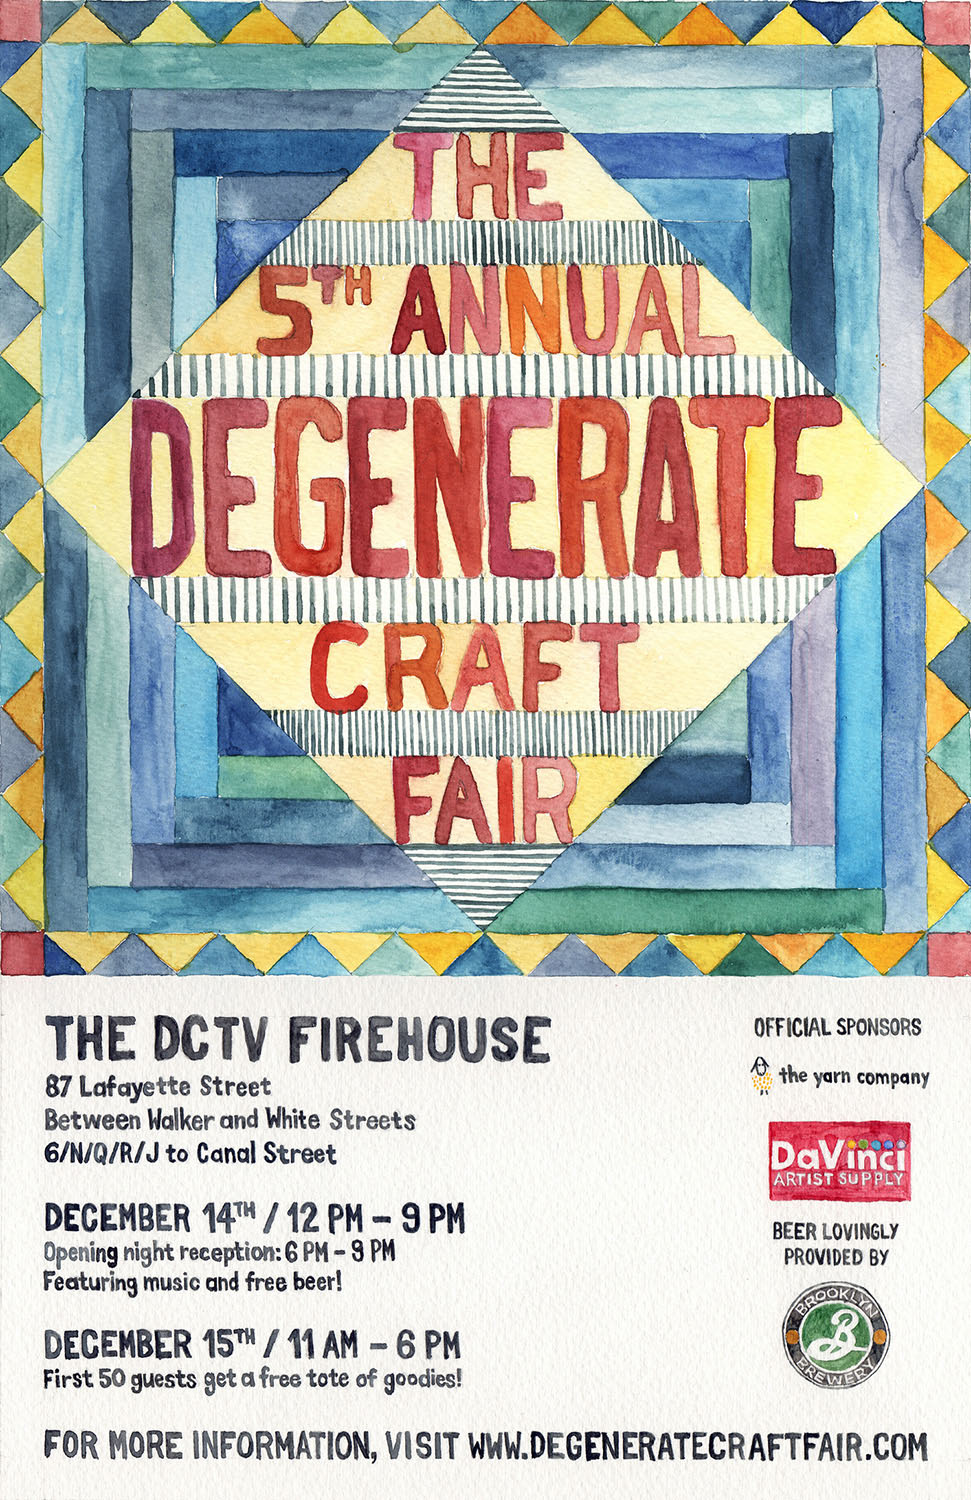 Poster for The 5th Annual Degenerate Craft Fair in 2013